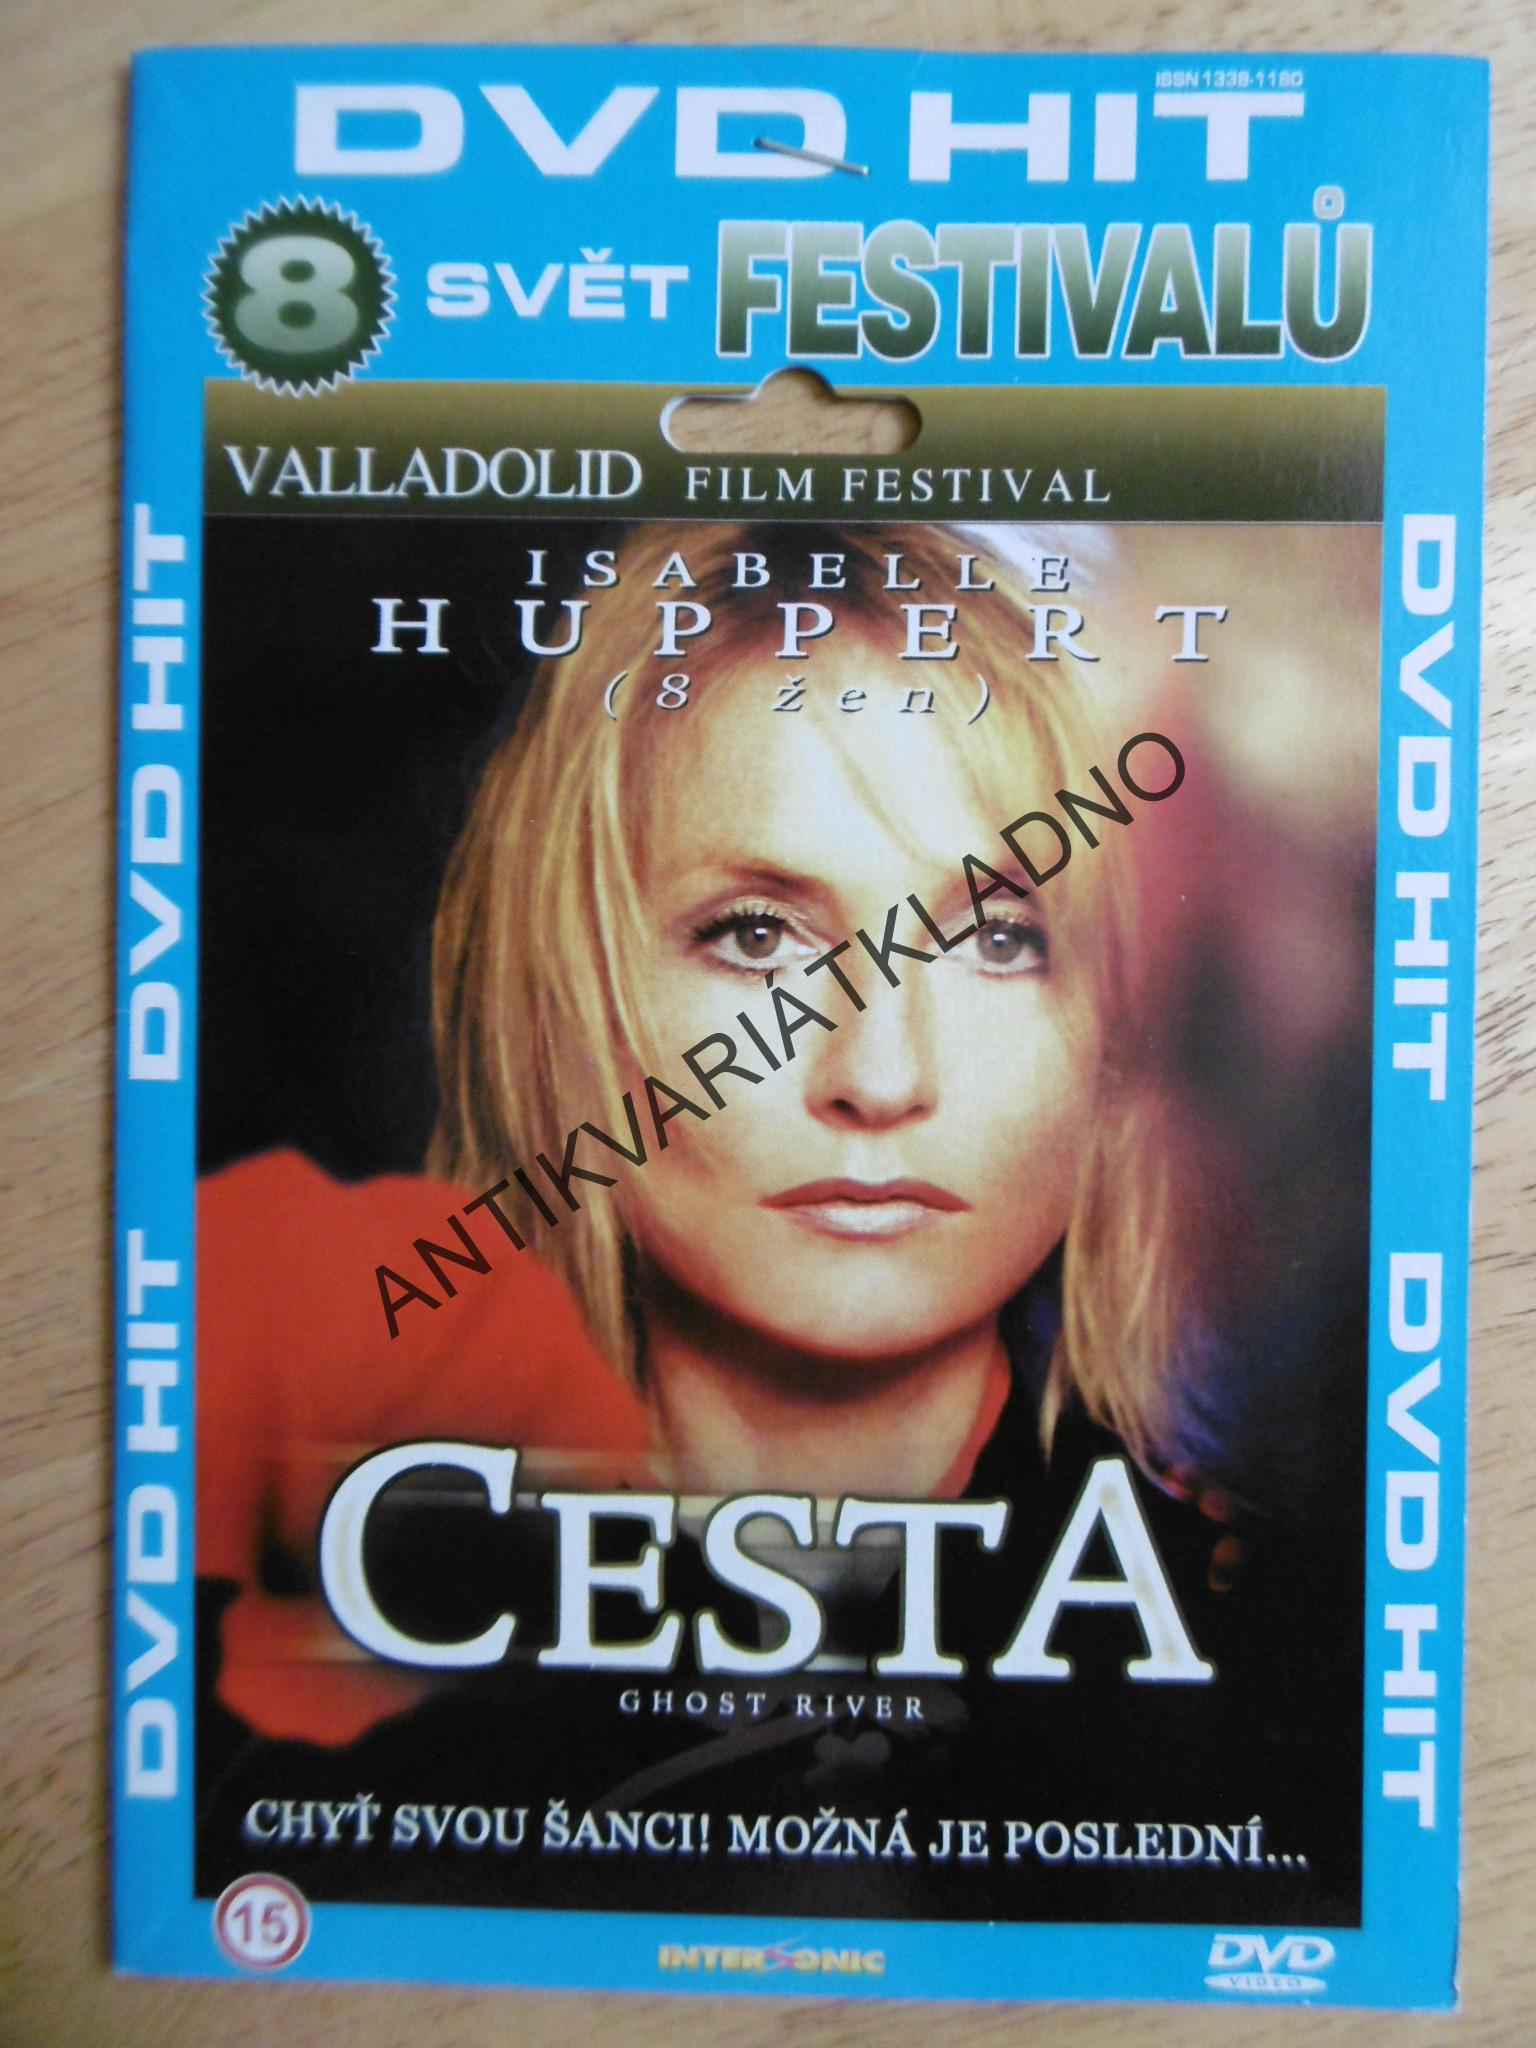 CESTA, GHOST RIVER, DVD FILM